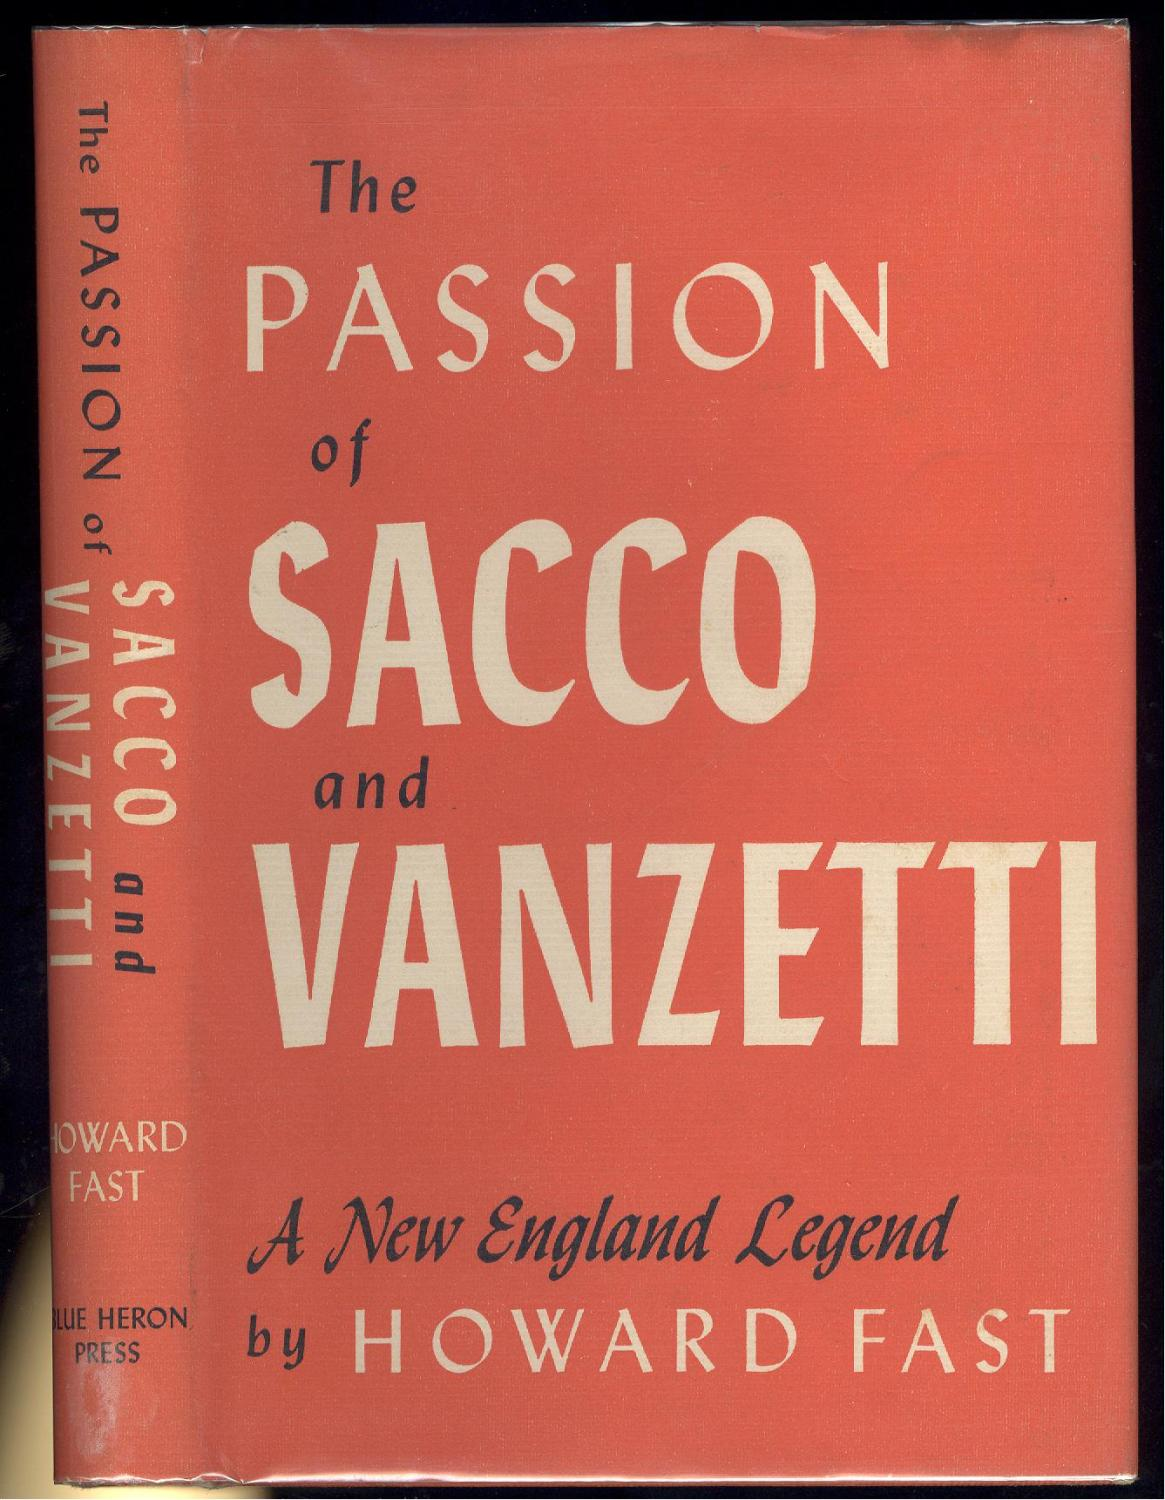 The Passion Of Sacco And Vanzetti A New England Legend By Howard Fast Fine Hardcover 1953 1st Edition Signed By Author Kaleidoscope Books Collectibles